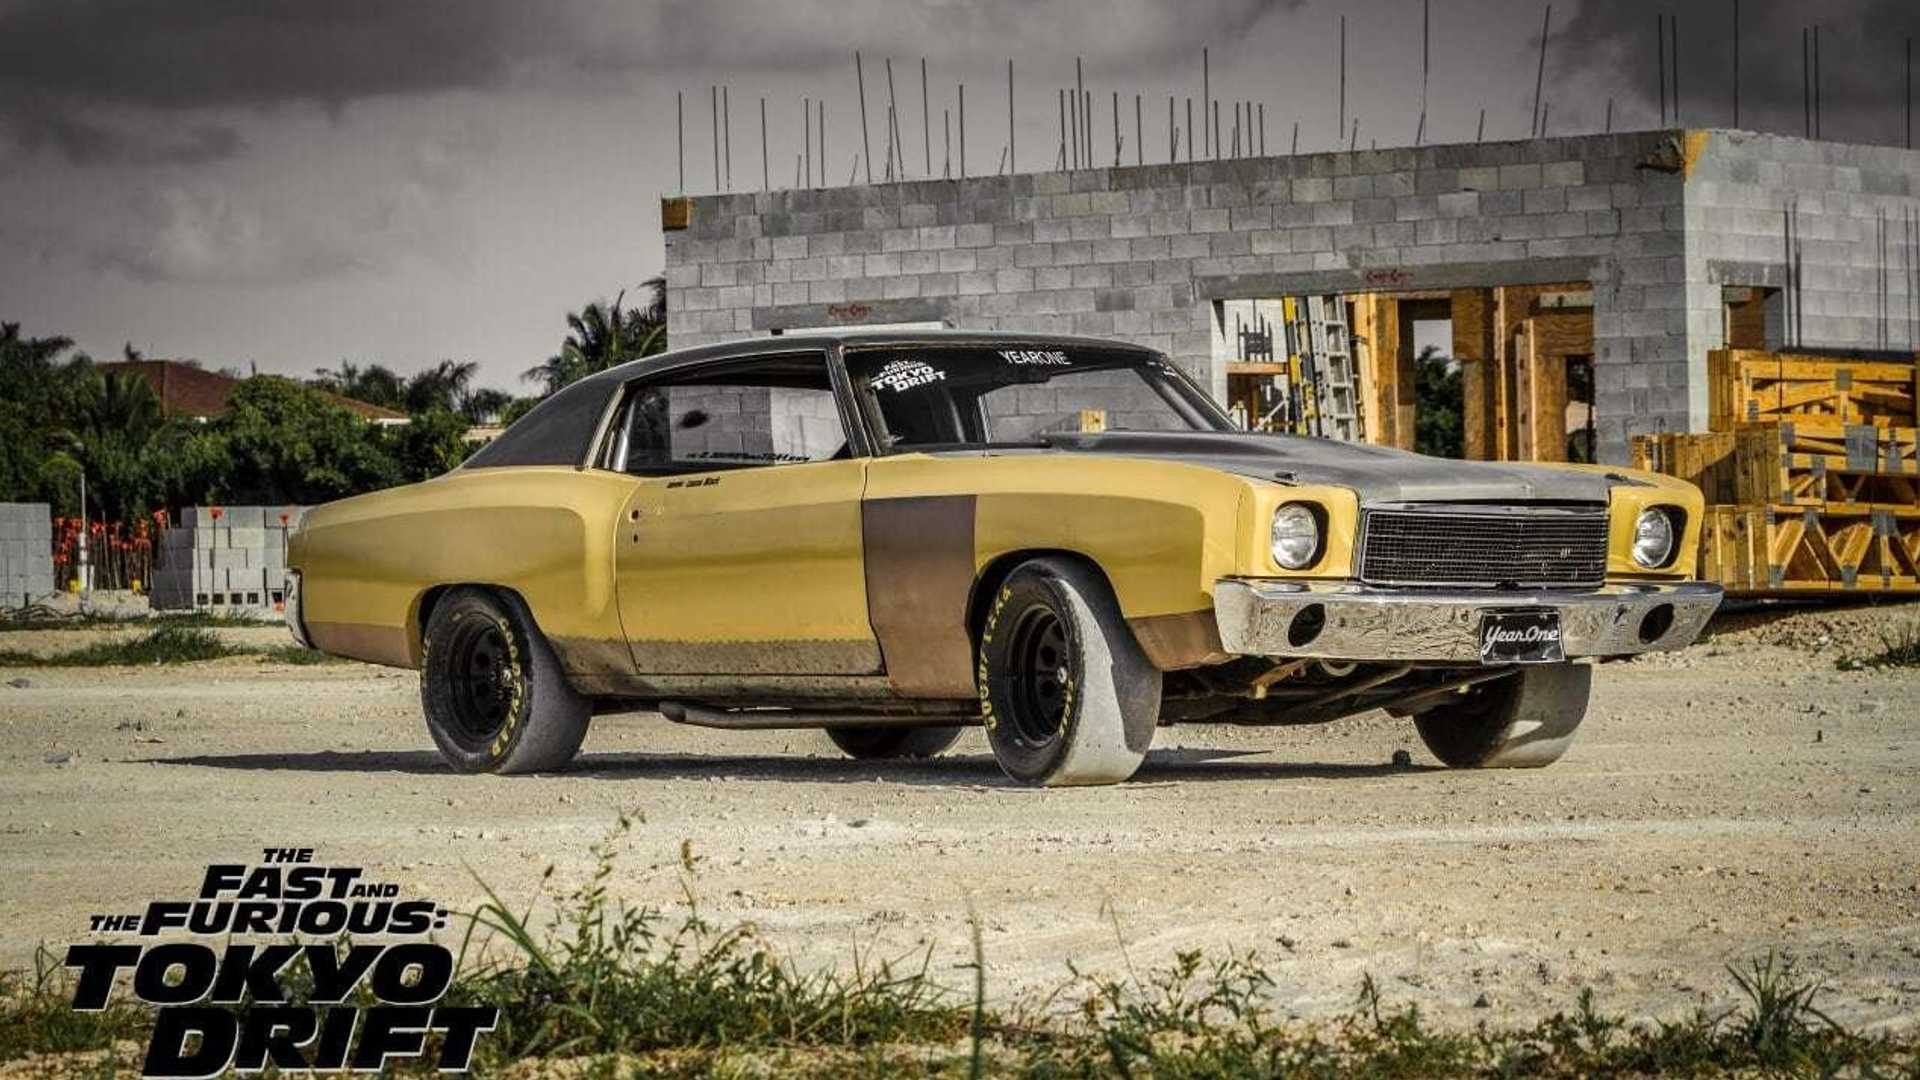 1971 Chevy Monte Carlo From Fast And Furious Tokyo Drift For Sale